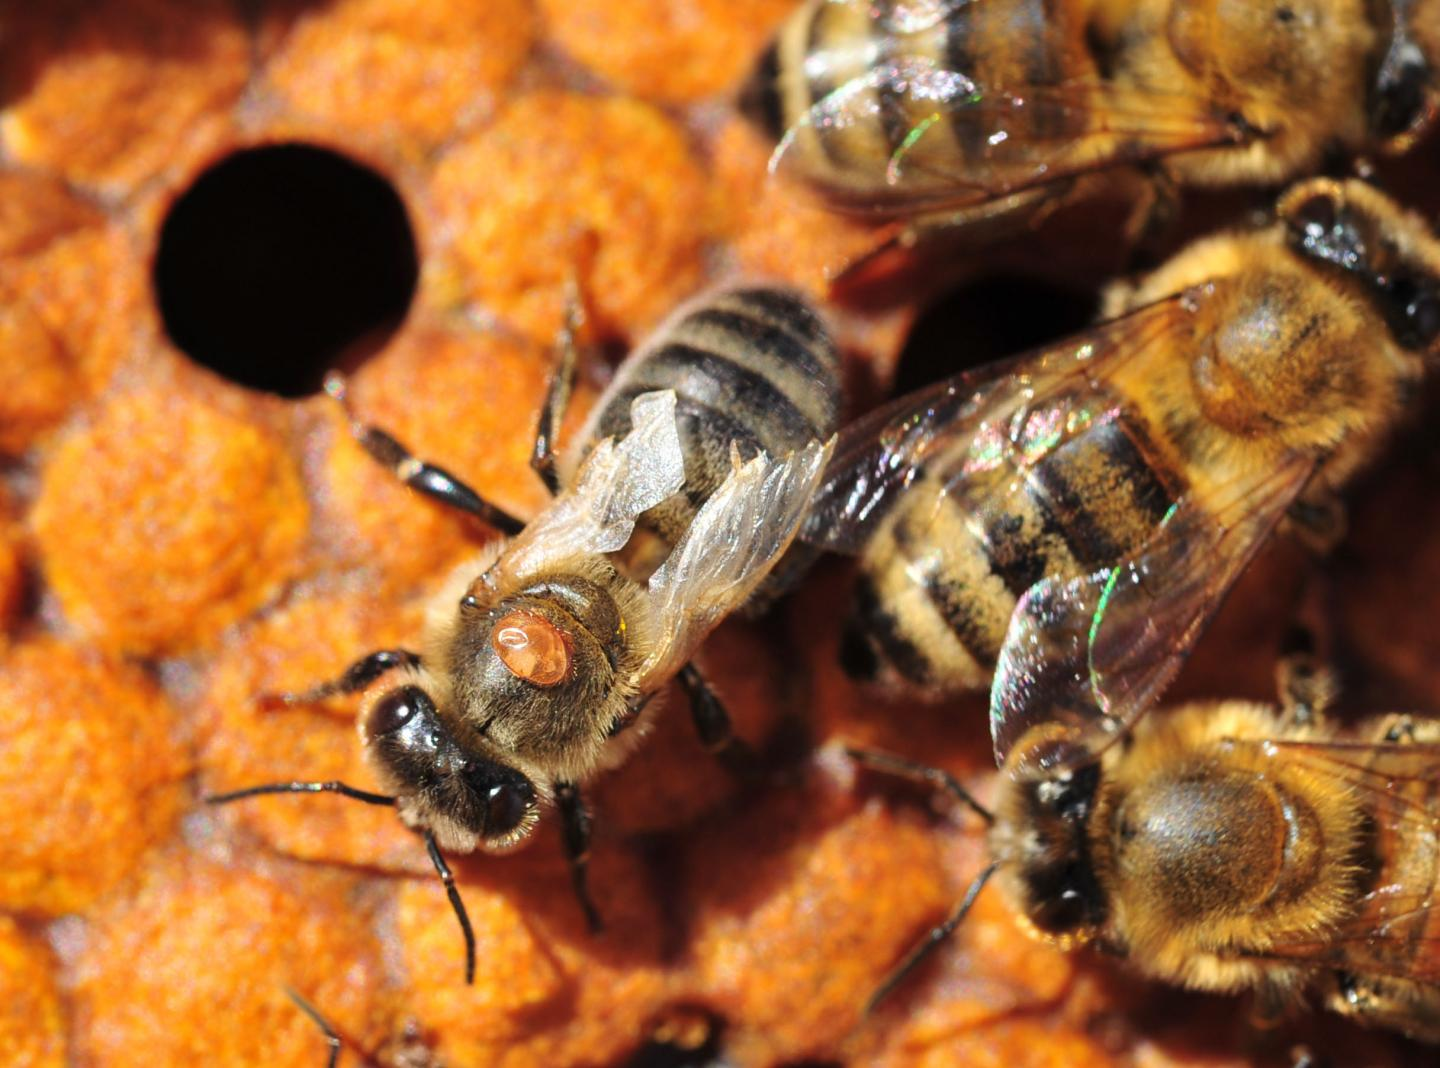 varroa destructor and honey bee relationship with plants